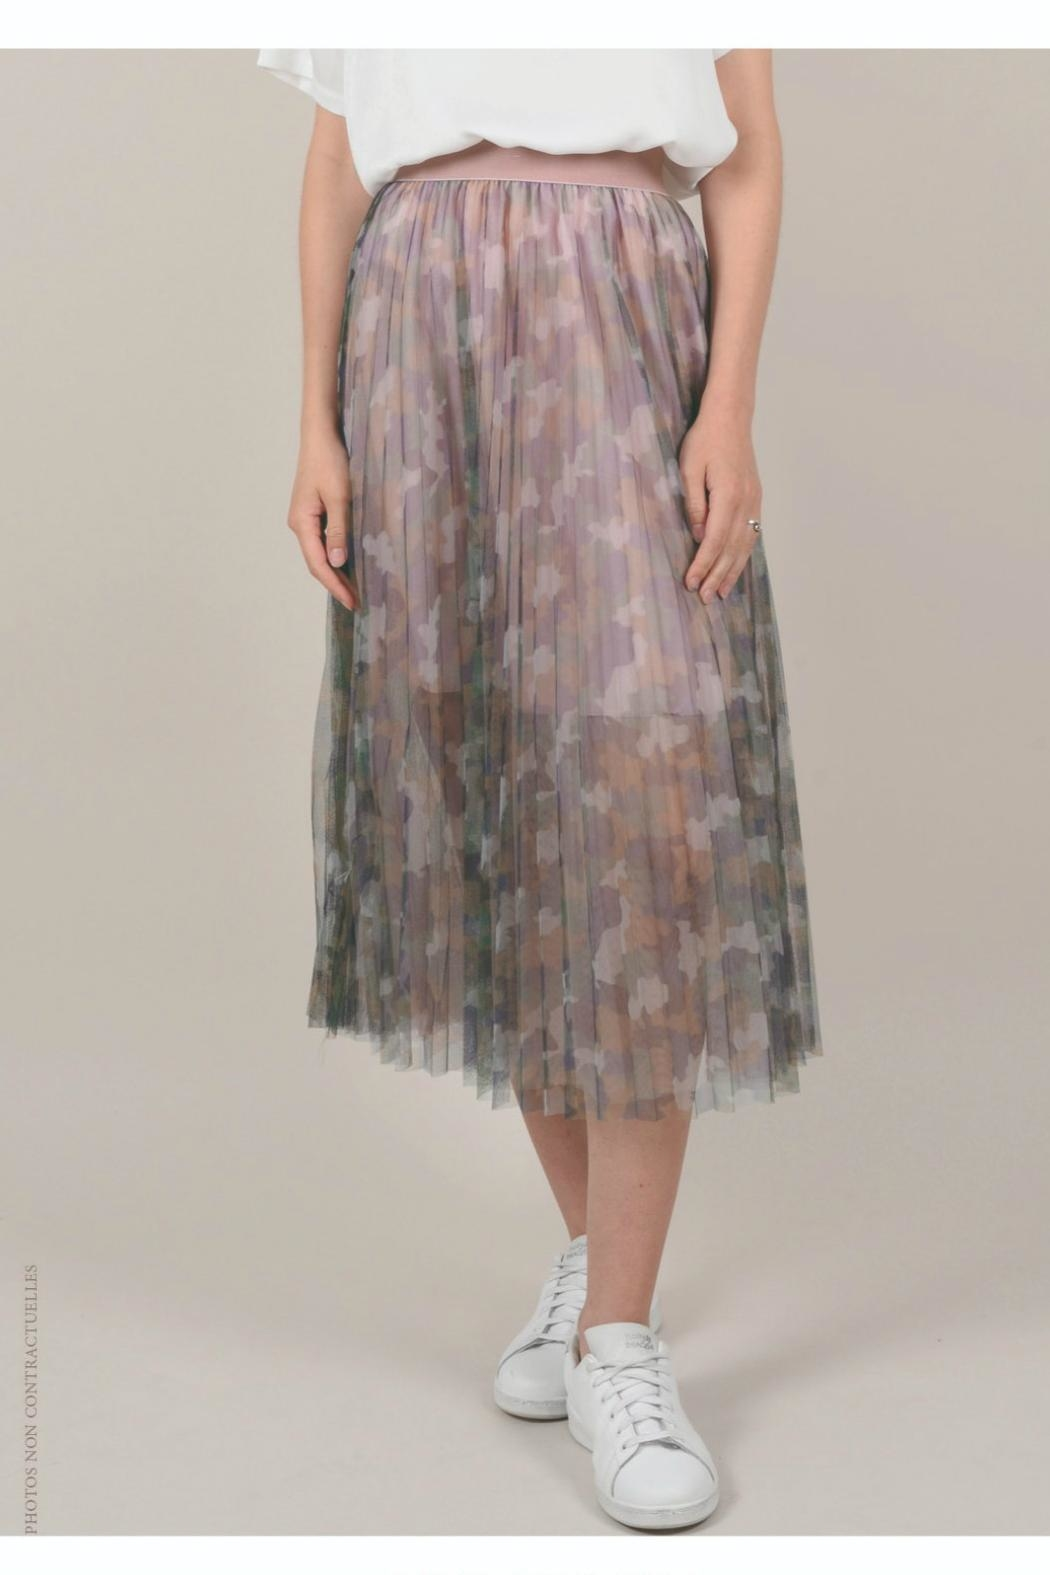 Molly Bracken Multi/print Tulle Skirt - Main Image